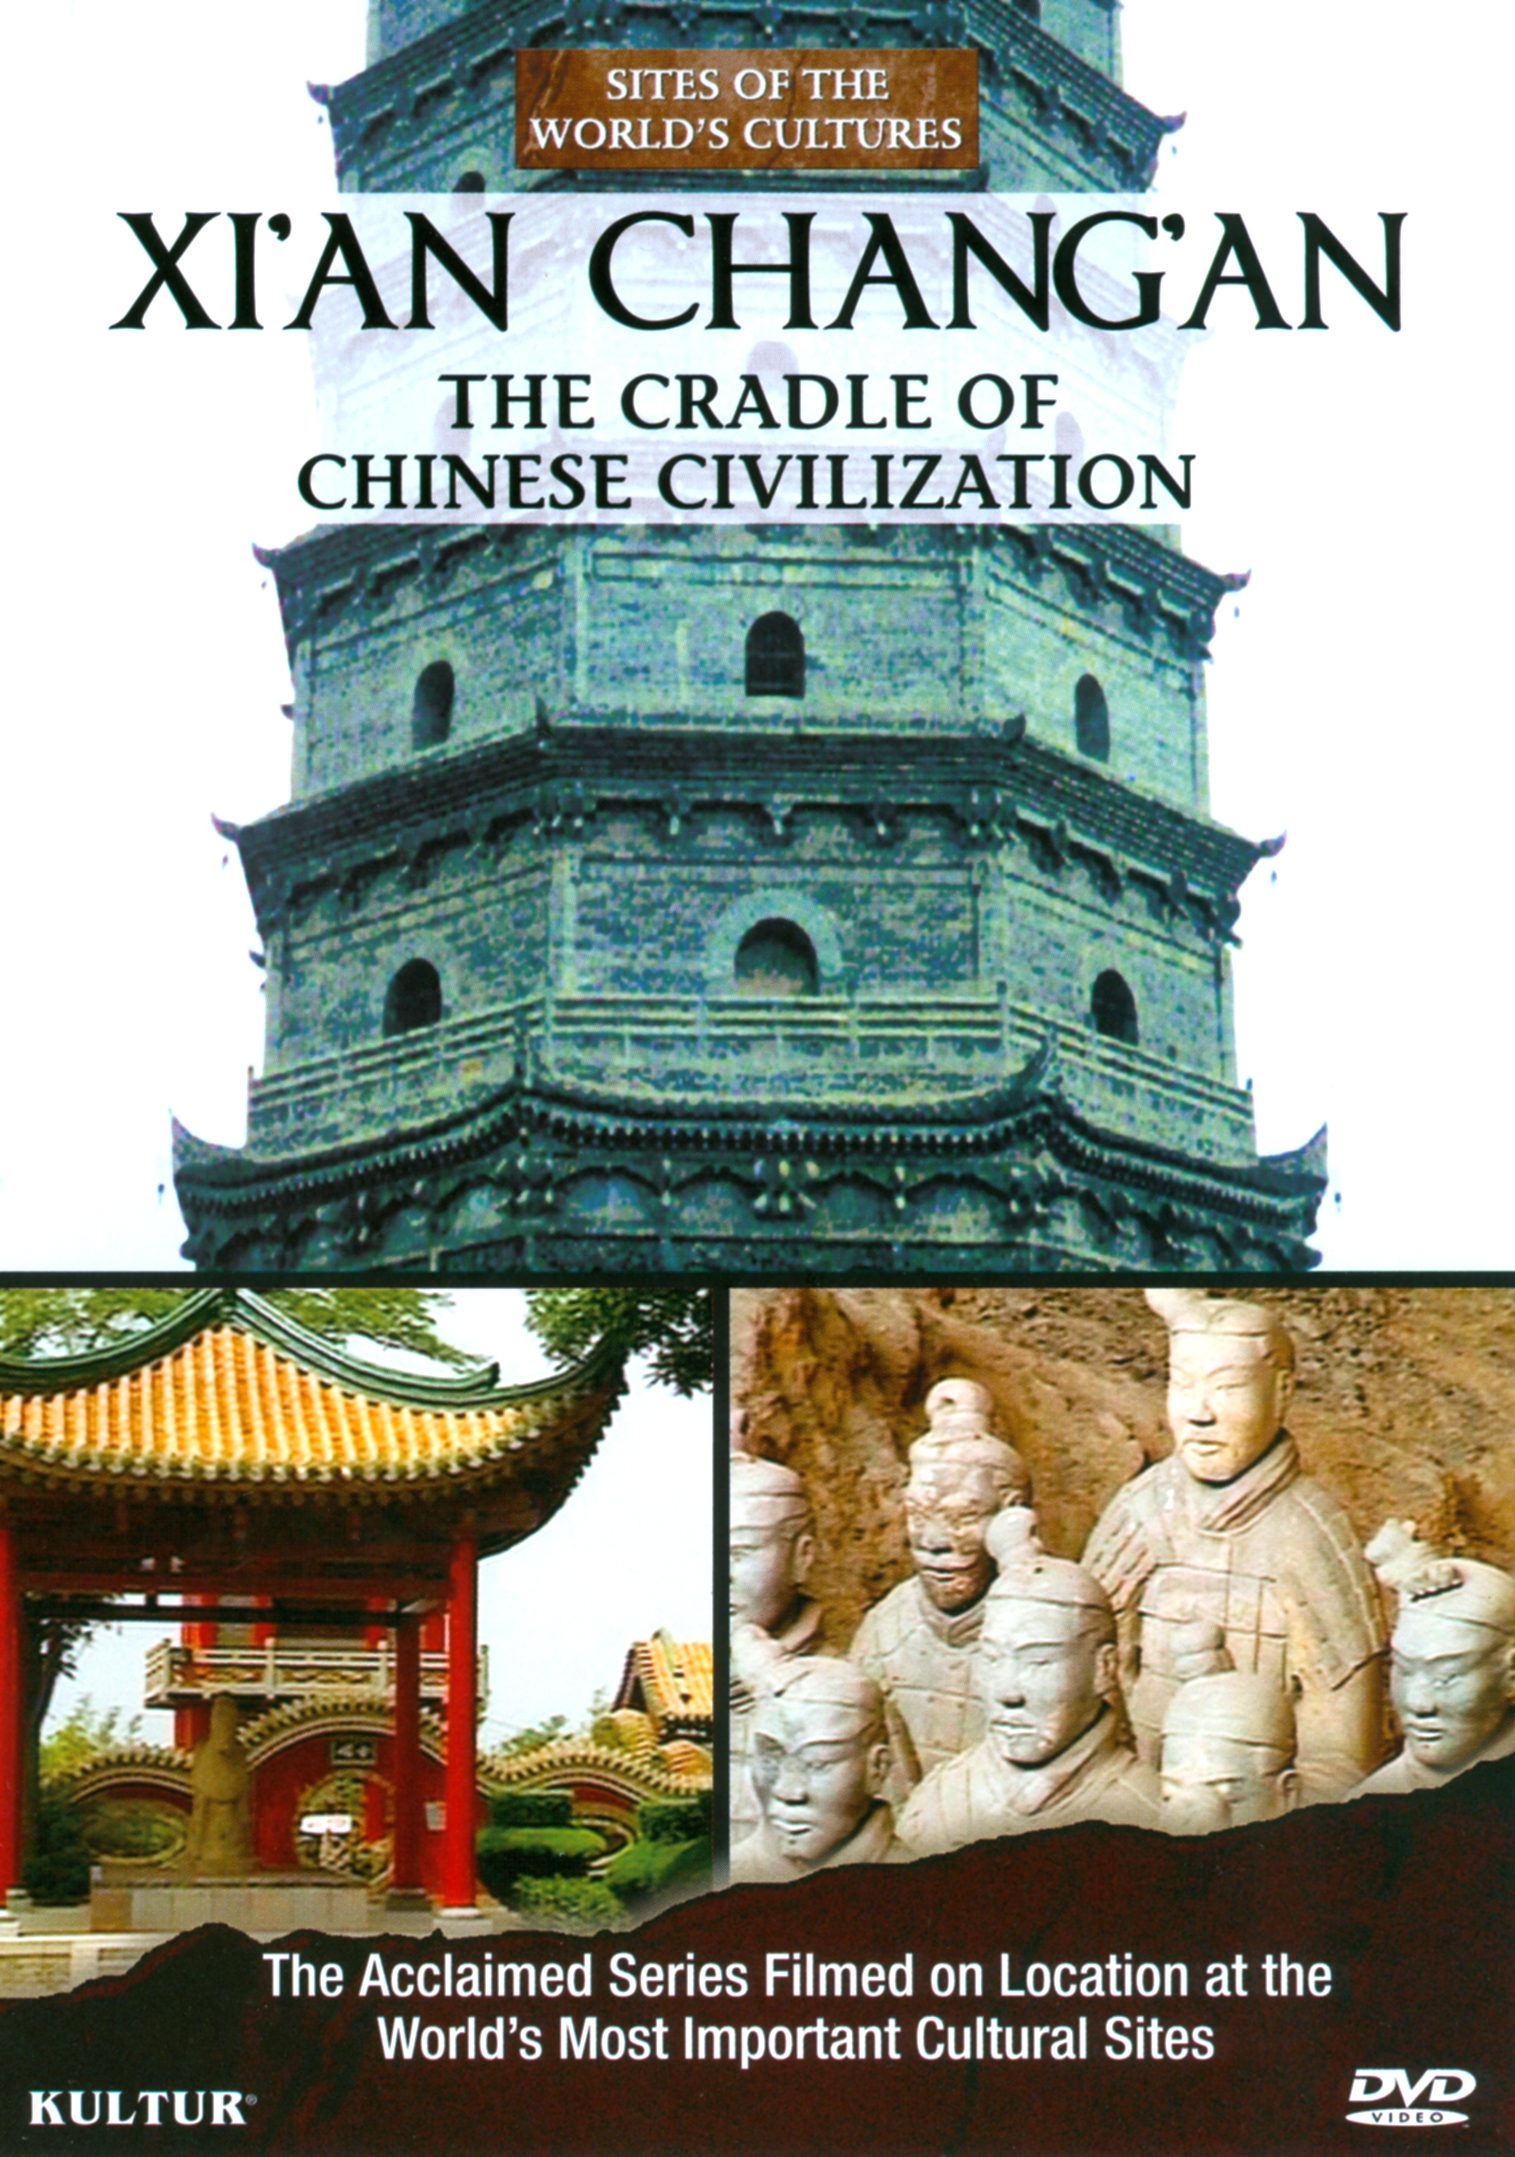 Sites of the World's Cultures: Xi'an - Chang'an, the Cradle of Chinese Civilization